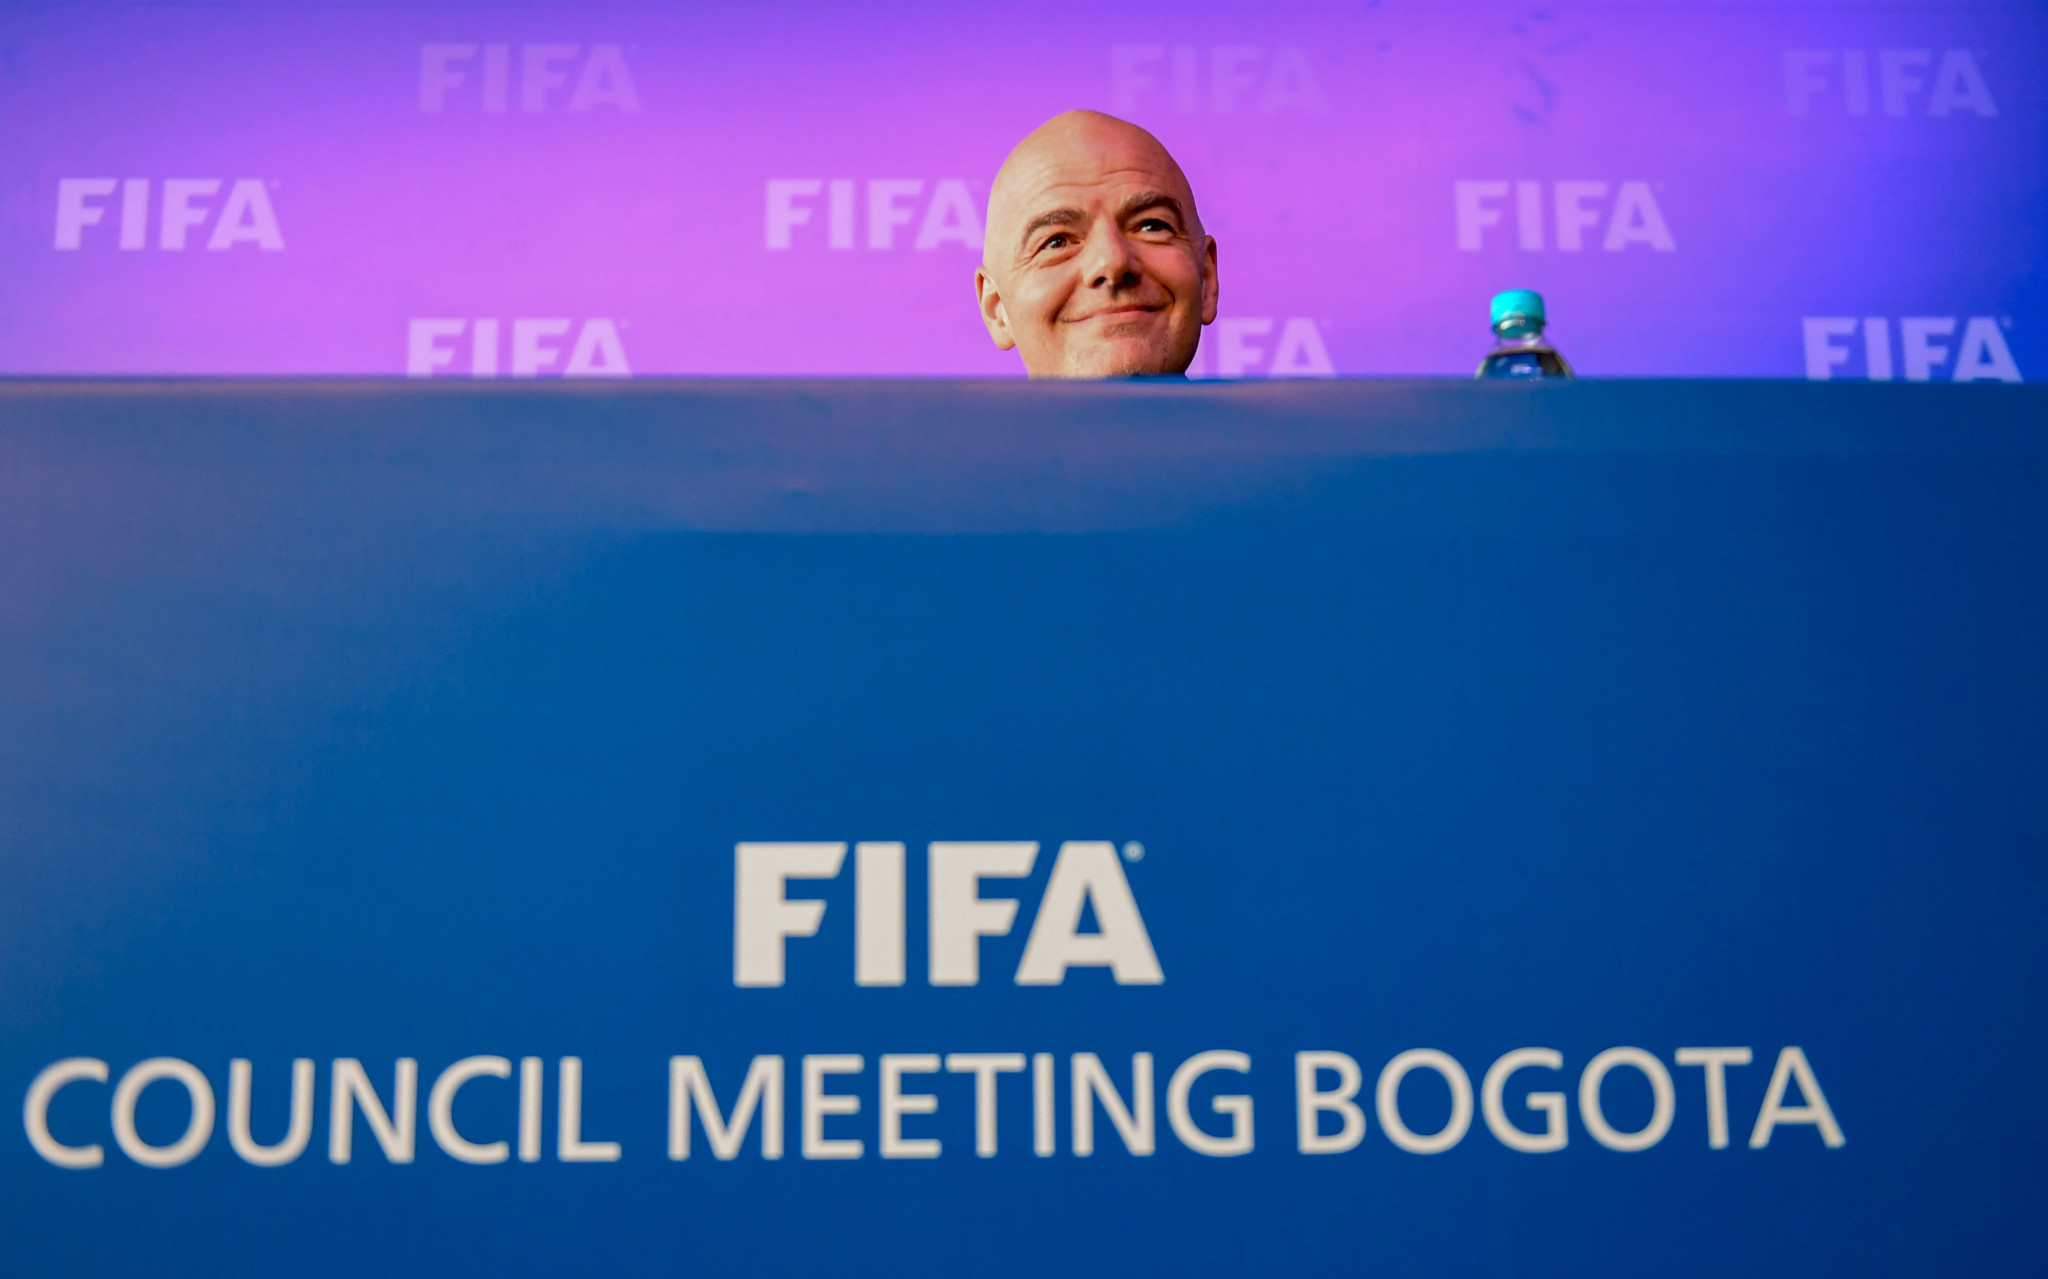 FIFA President Gianni Infantino announced the news in Bogota ©Getty Images